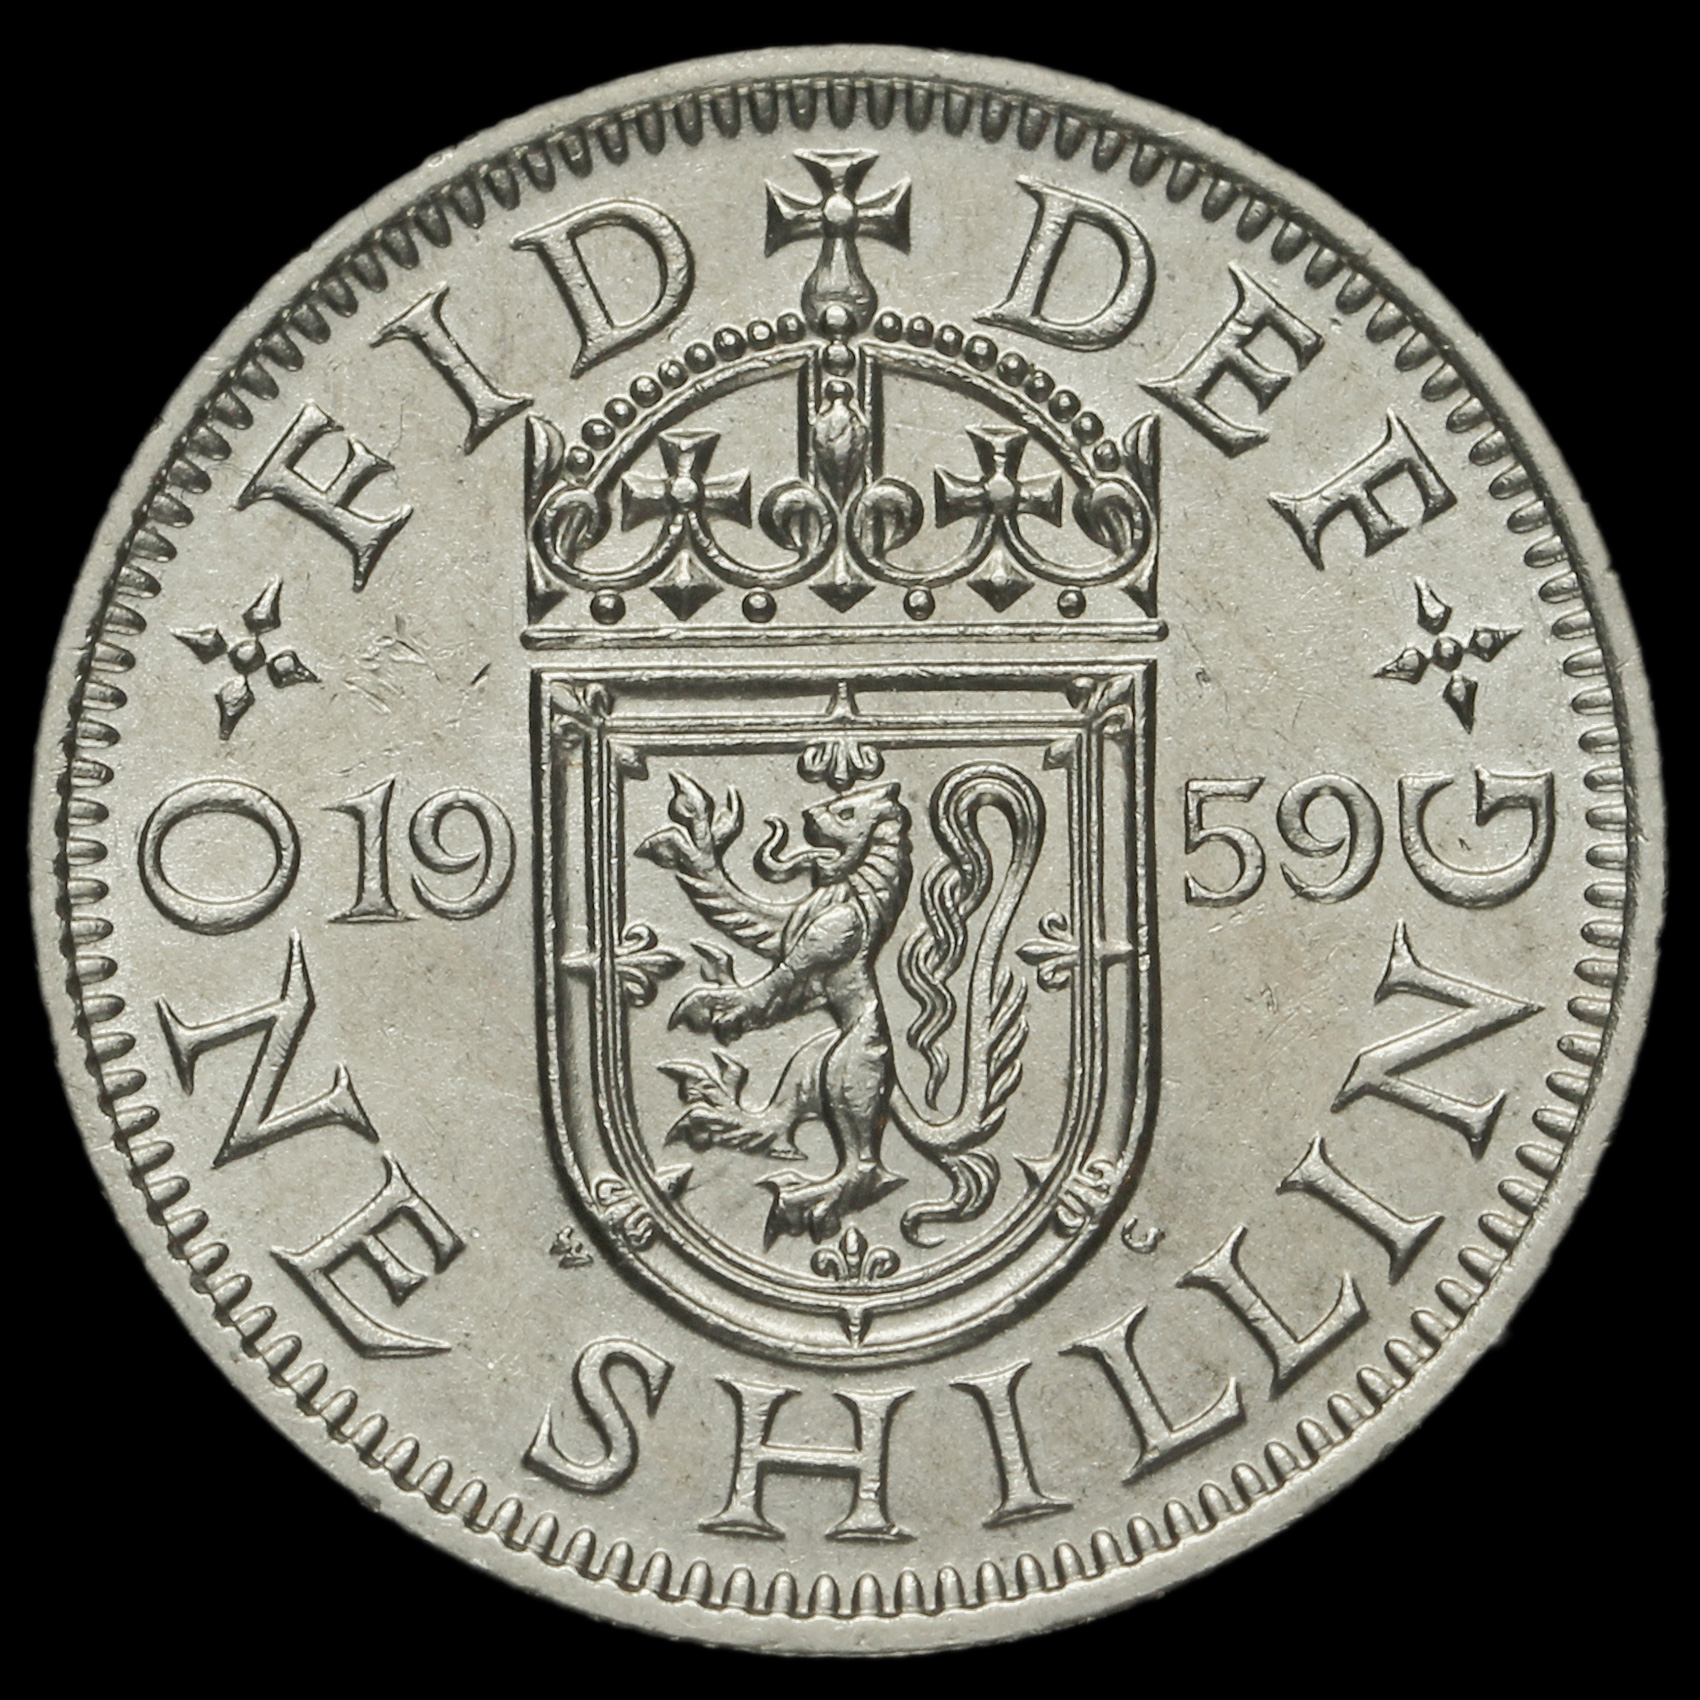 1959 Queen Elizabeth II Scottish Shilling, Rare